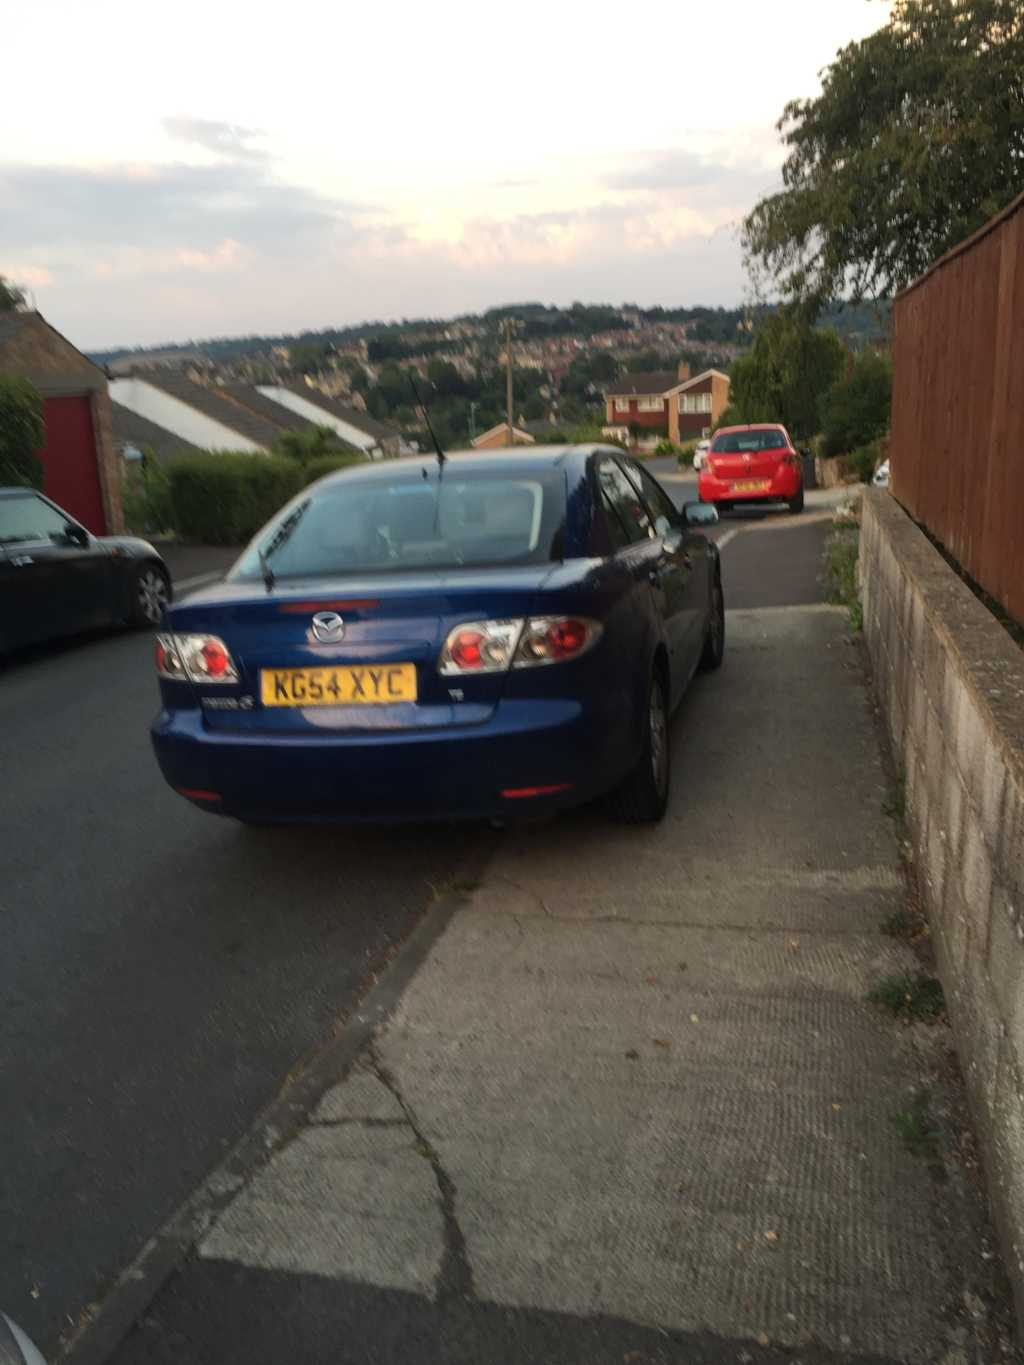 KG54XYC is an Inconsiderate Parker